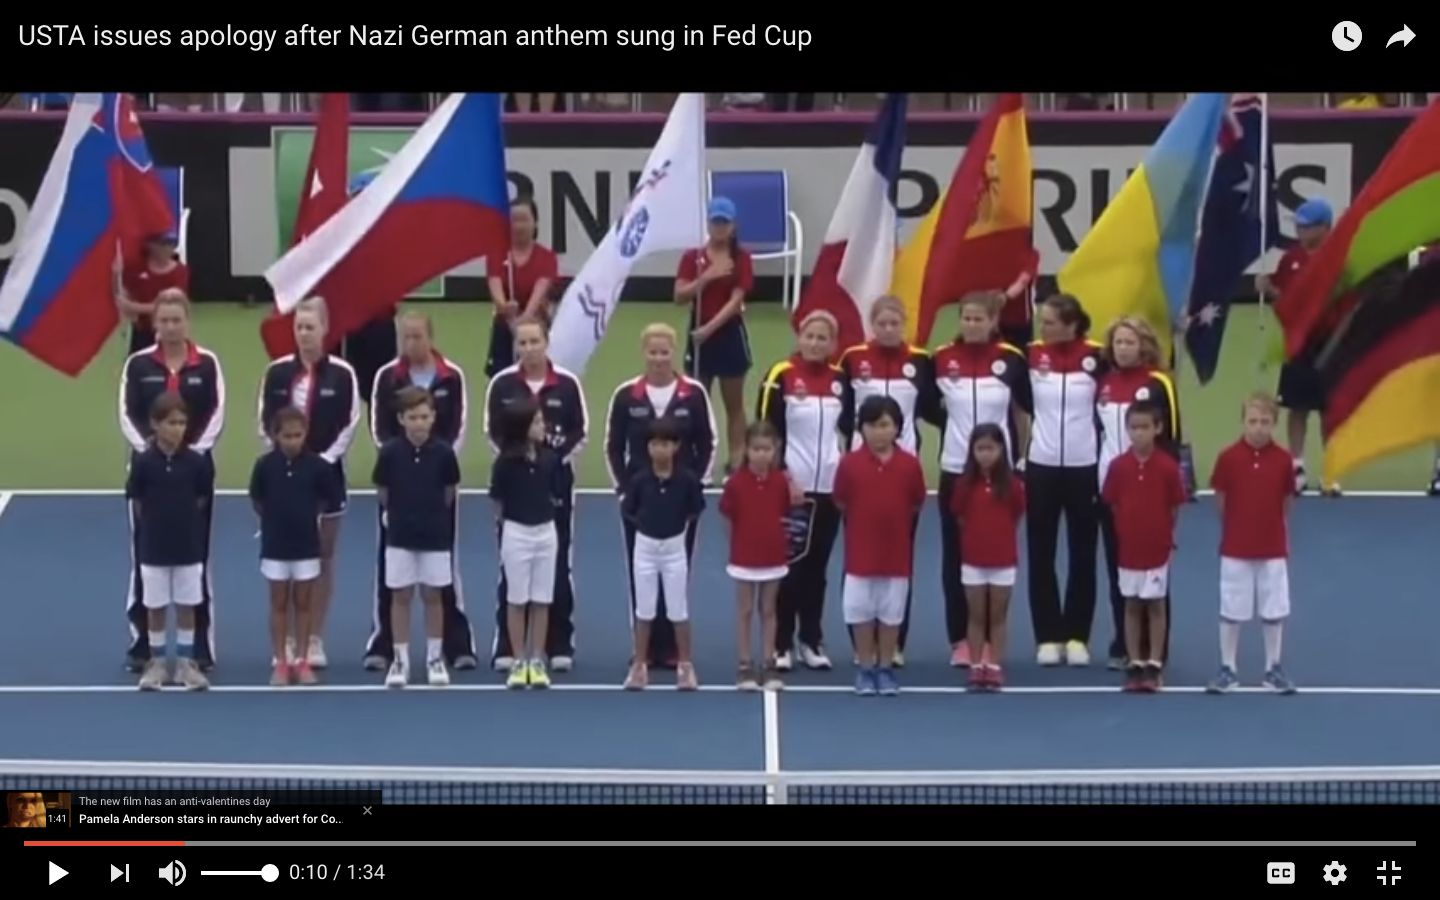 Members of Germanys tennis team appeared to try to sing over the outdated verse with their countrys modern anthem